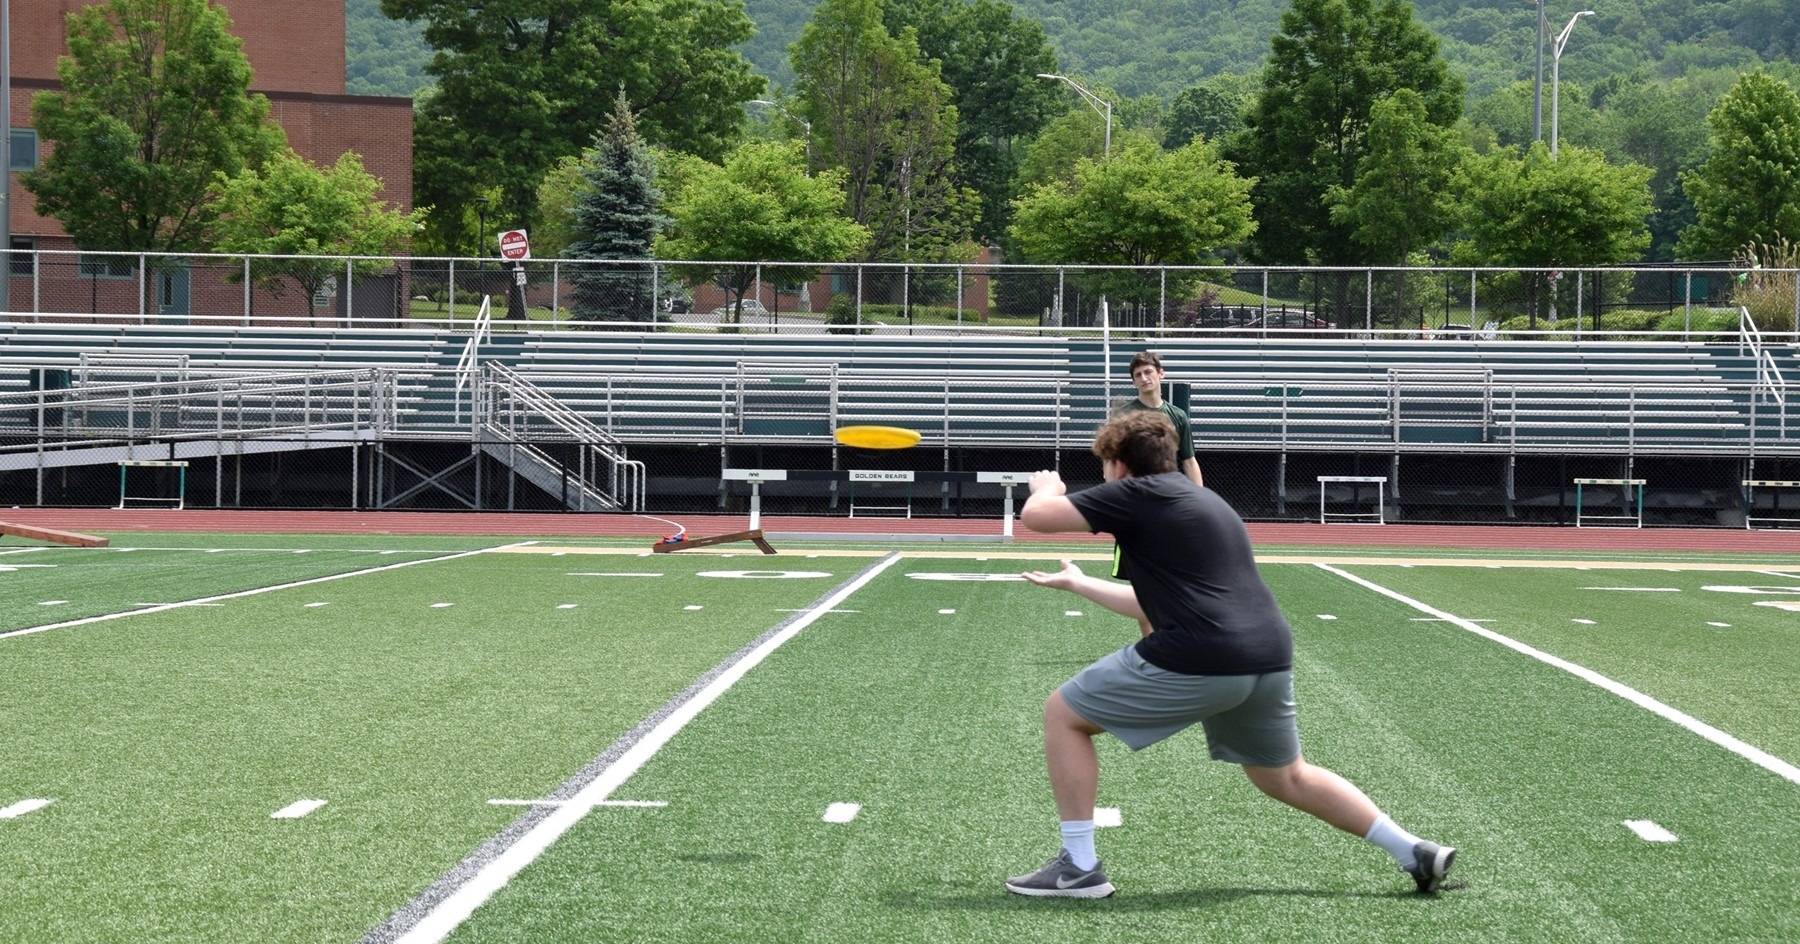 A vestal High School senior is about to catch a yellow frisbie during a casual game on the field of Hoover Stadium during the Prom Promise Picnic.